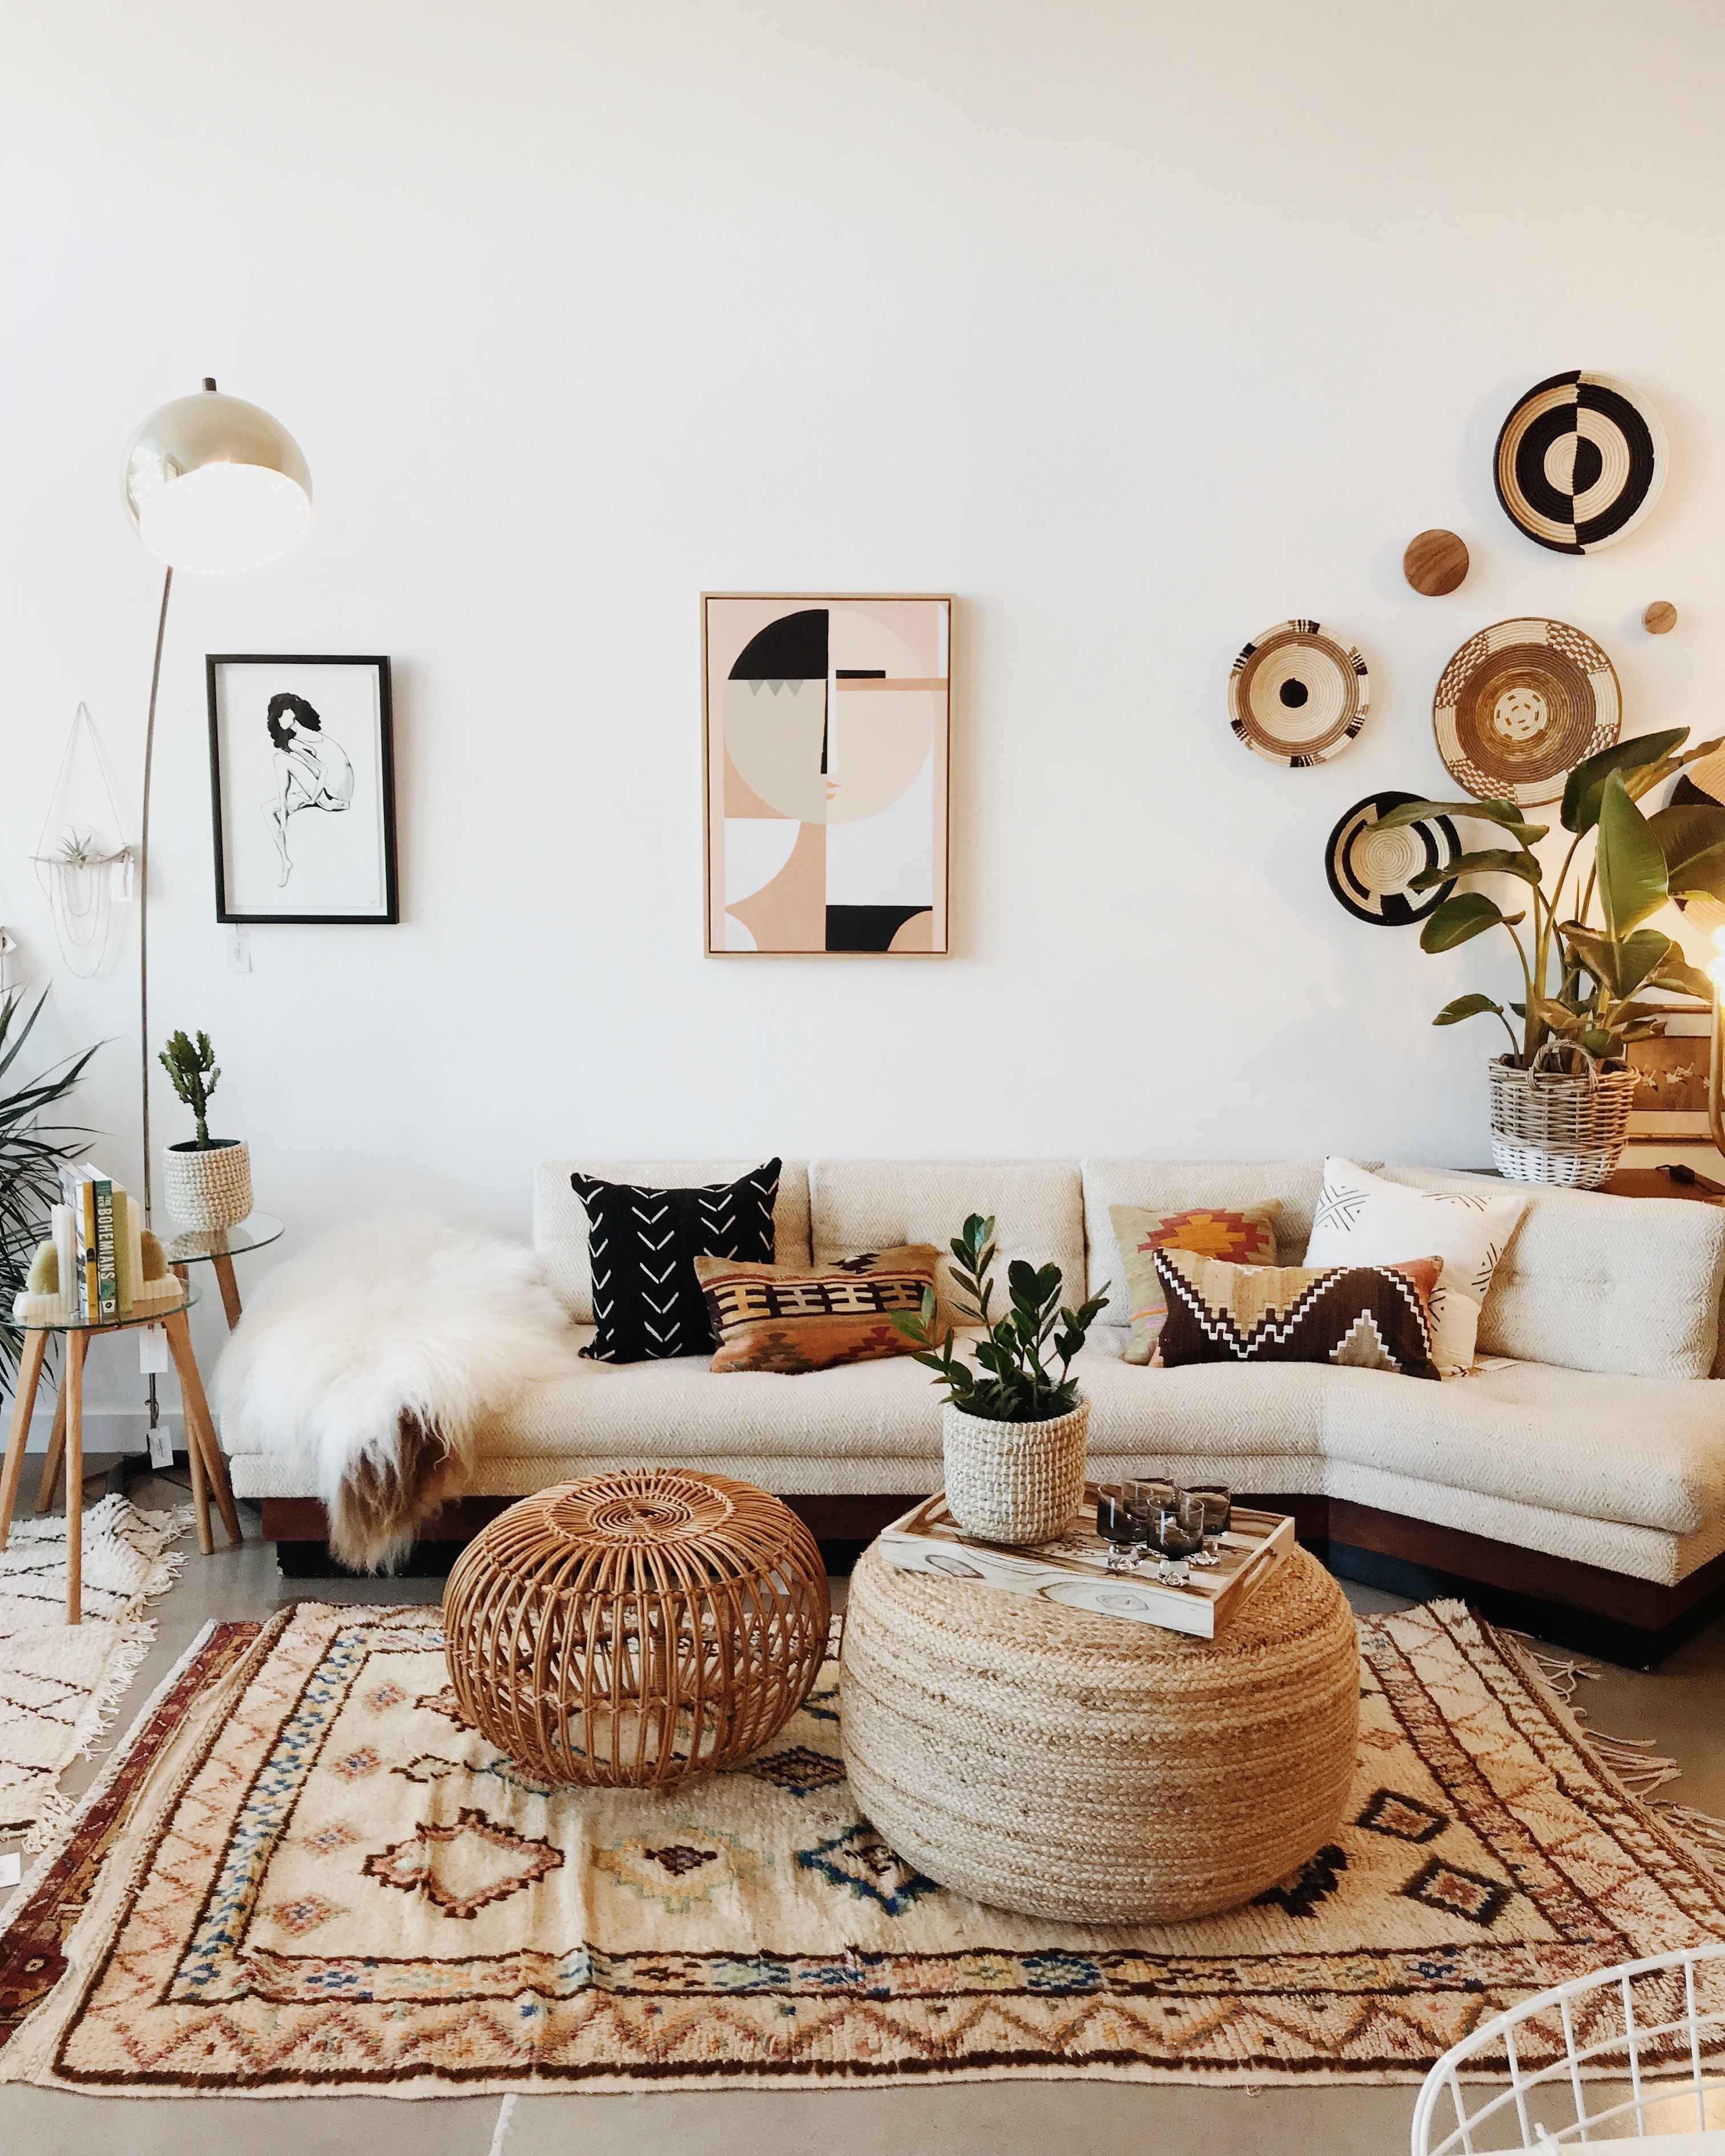 neutral tones with images rooms home decor industrial interior style boho living room on boho chic decor living room bohemian kitchen id=72905